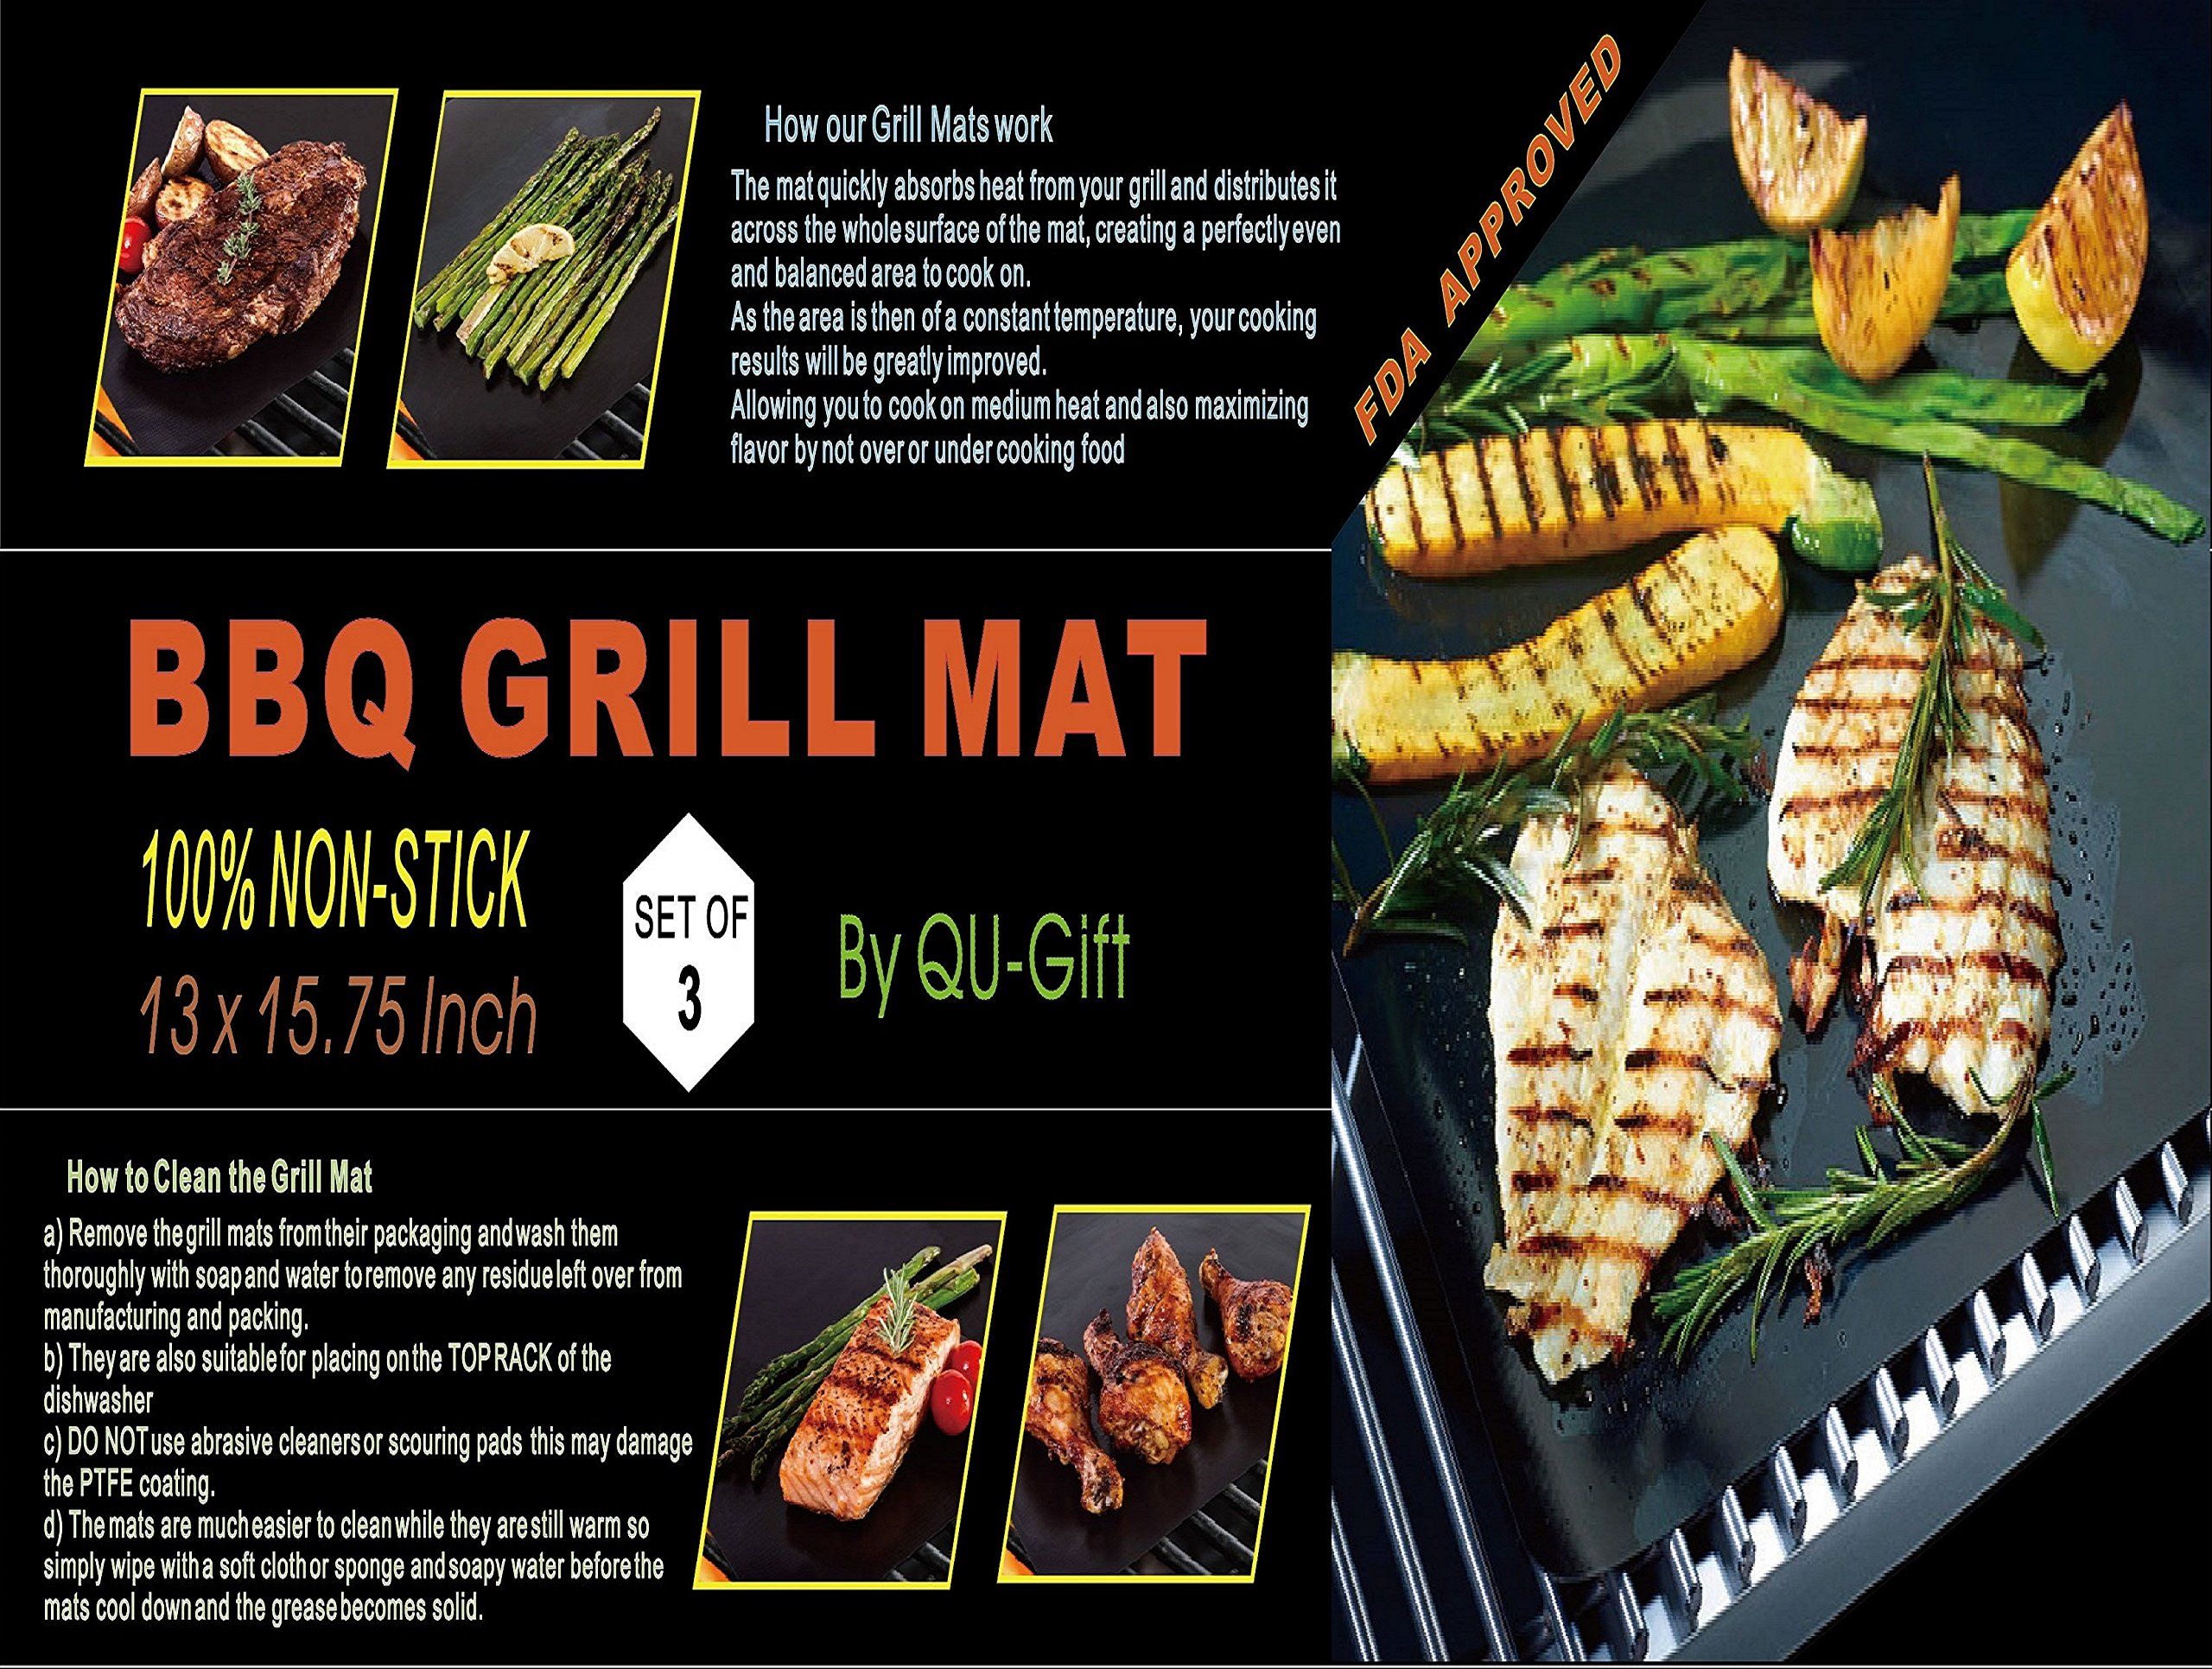 BBQ Mat Oven Liners - Set of 3 - Heavy Duty Non-Stick BBQ Grilling Mats- 15.75 x 13 Inch - Heat Resistant and Dishwasher Safe Use on Gas Charcoal Electric BBQ Grills and Smokers